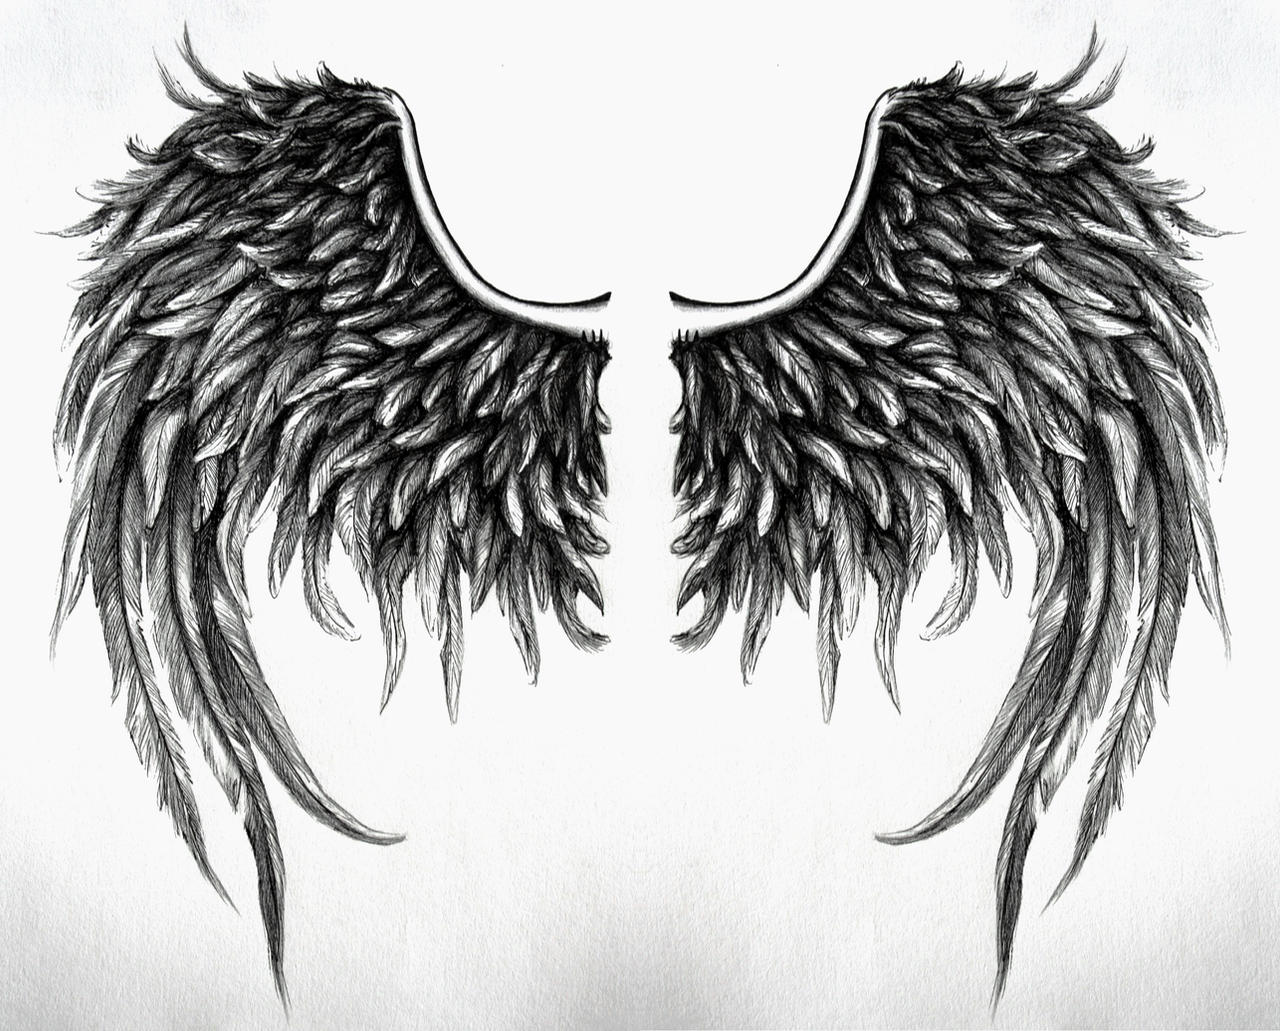 fallen angel wings design no4 by swarzeztier on deviantart. Black Bedroom Furniture Sets. Home Design Ideas